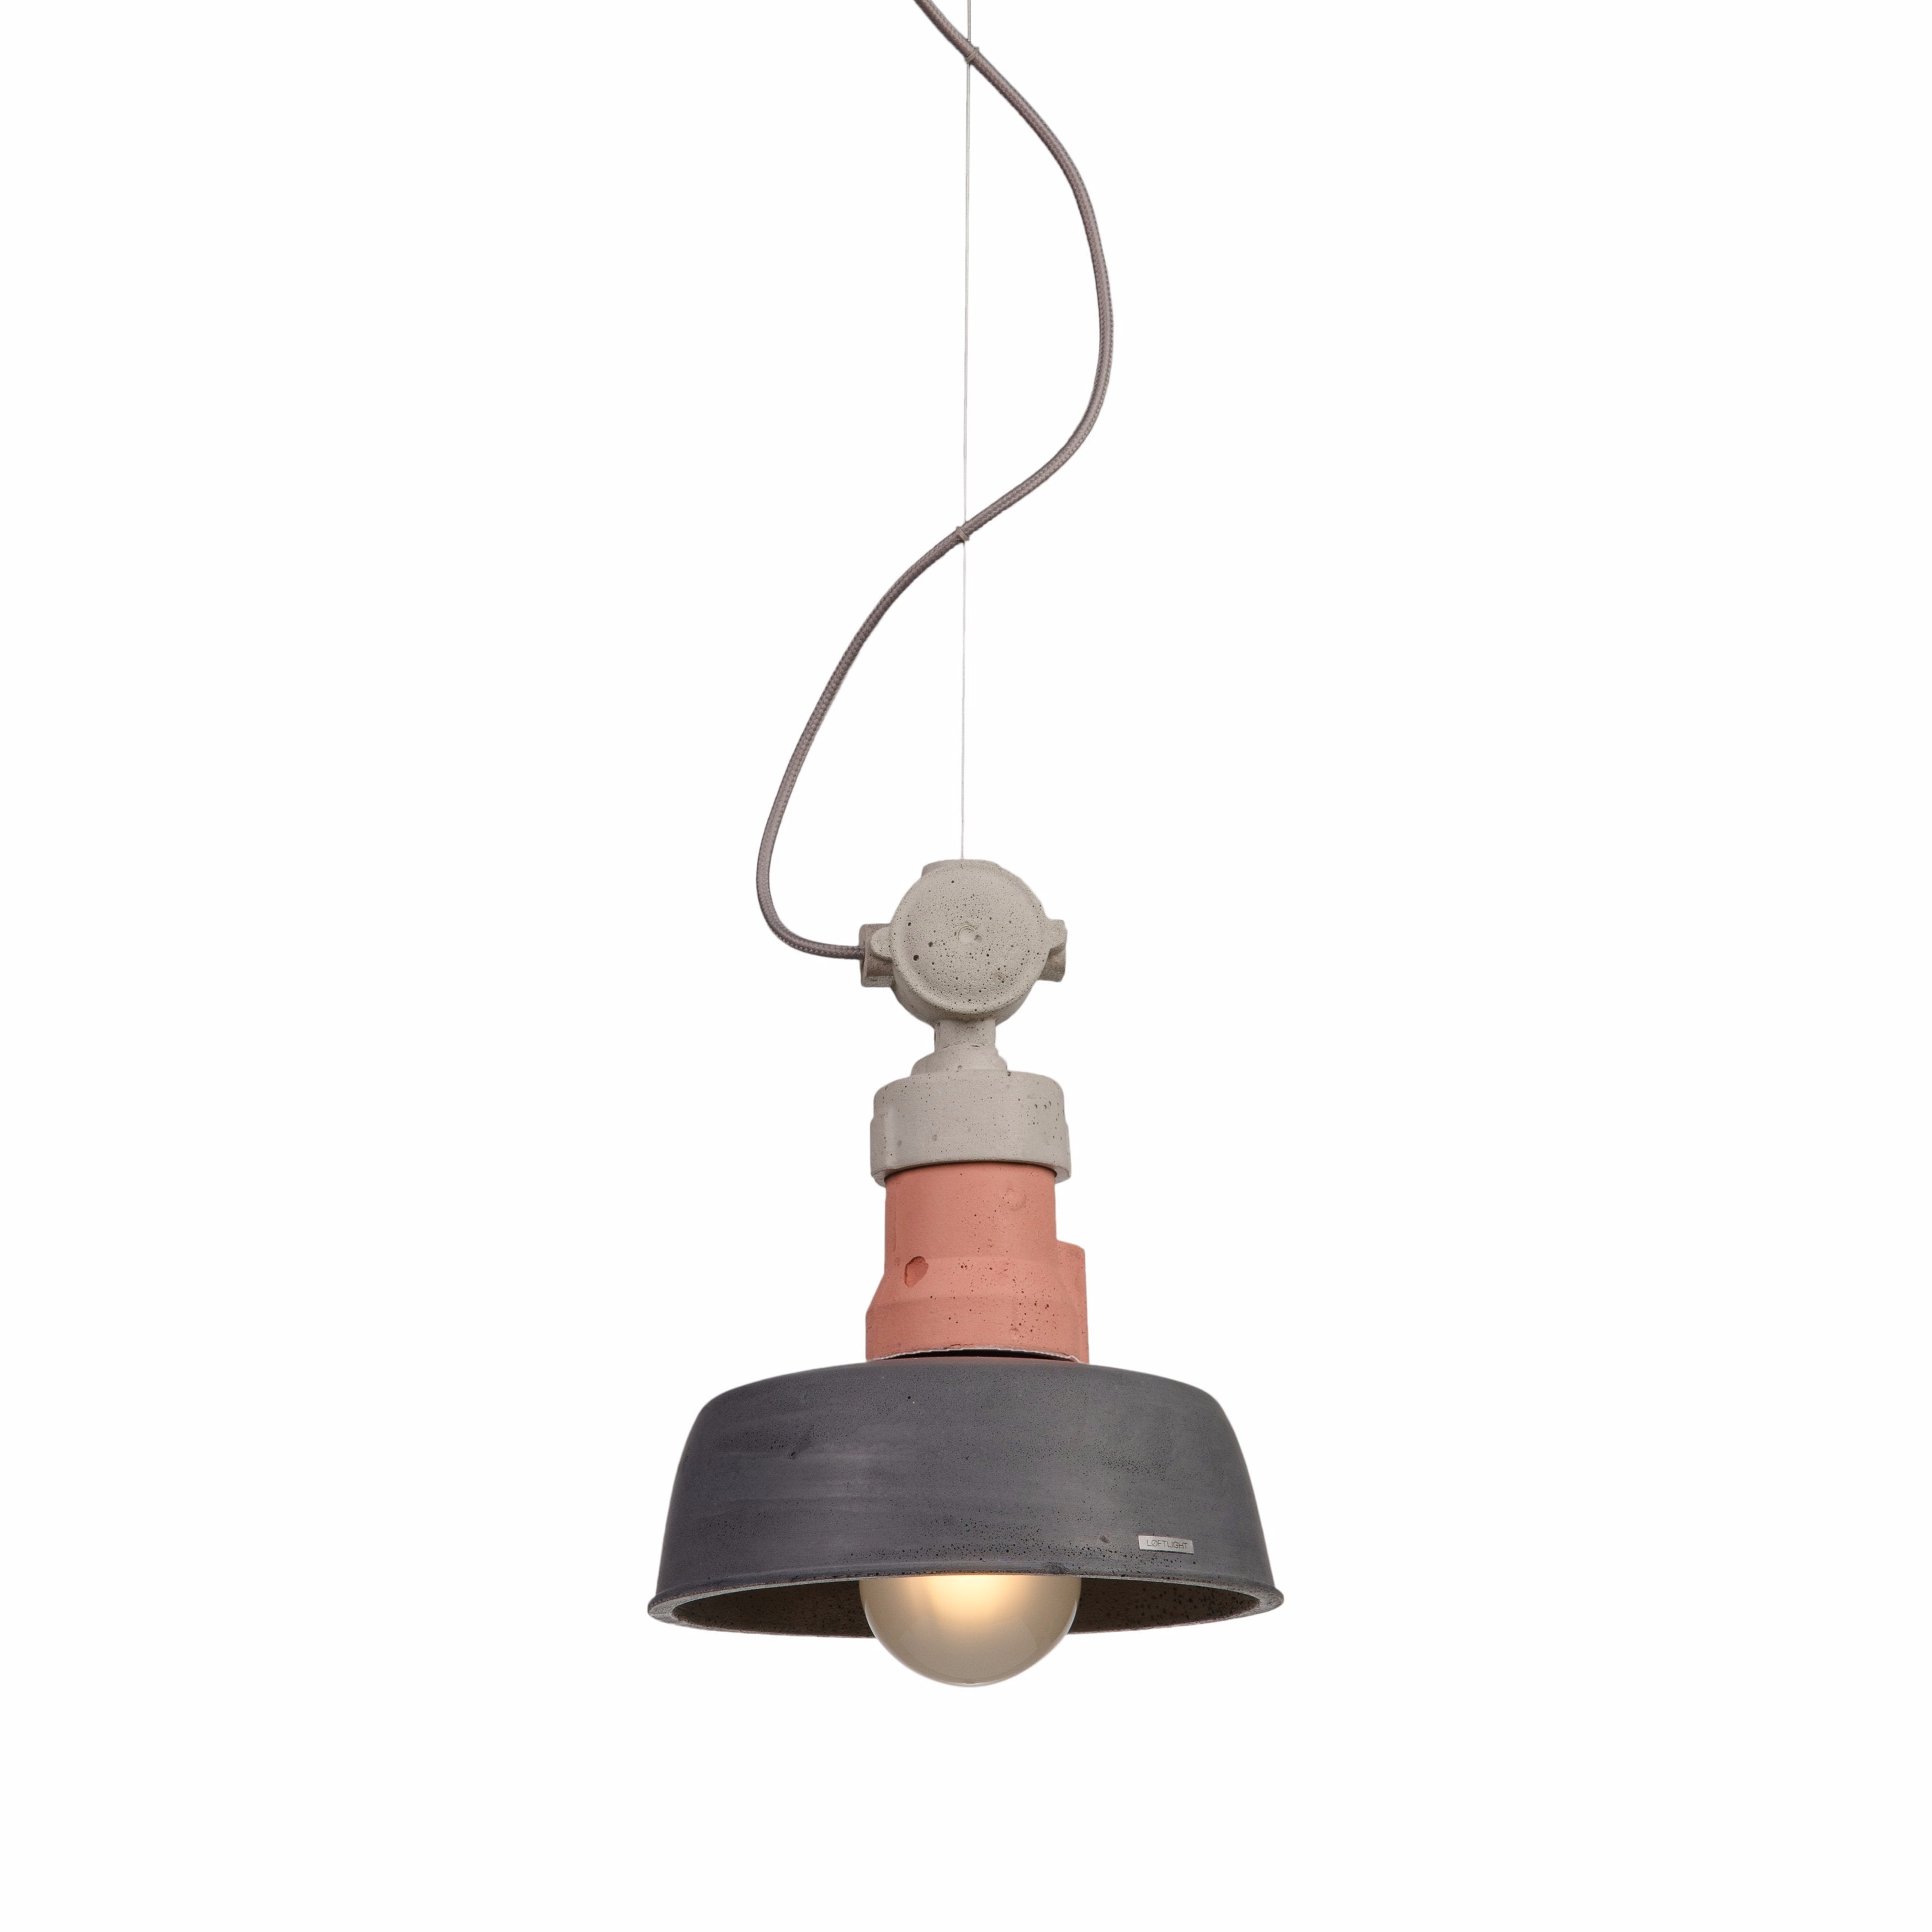 Loftlight Volta industrial pendant lamp with pastel pink detail in hand cast concrete from Warehouse Home